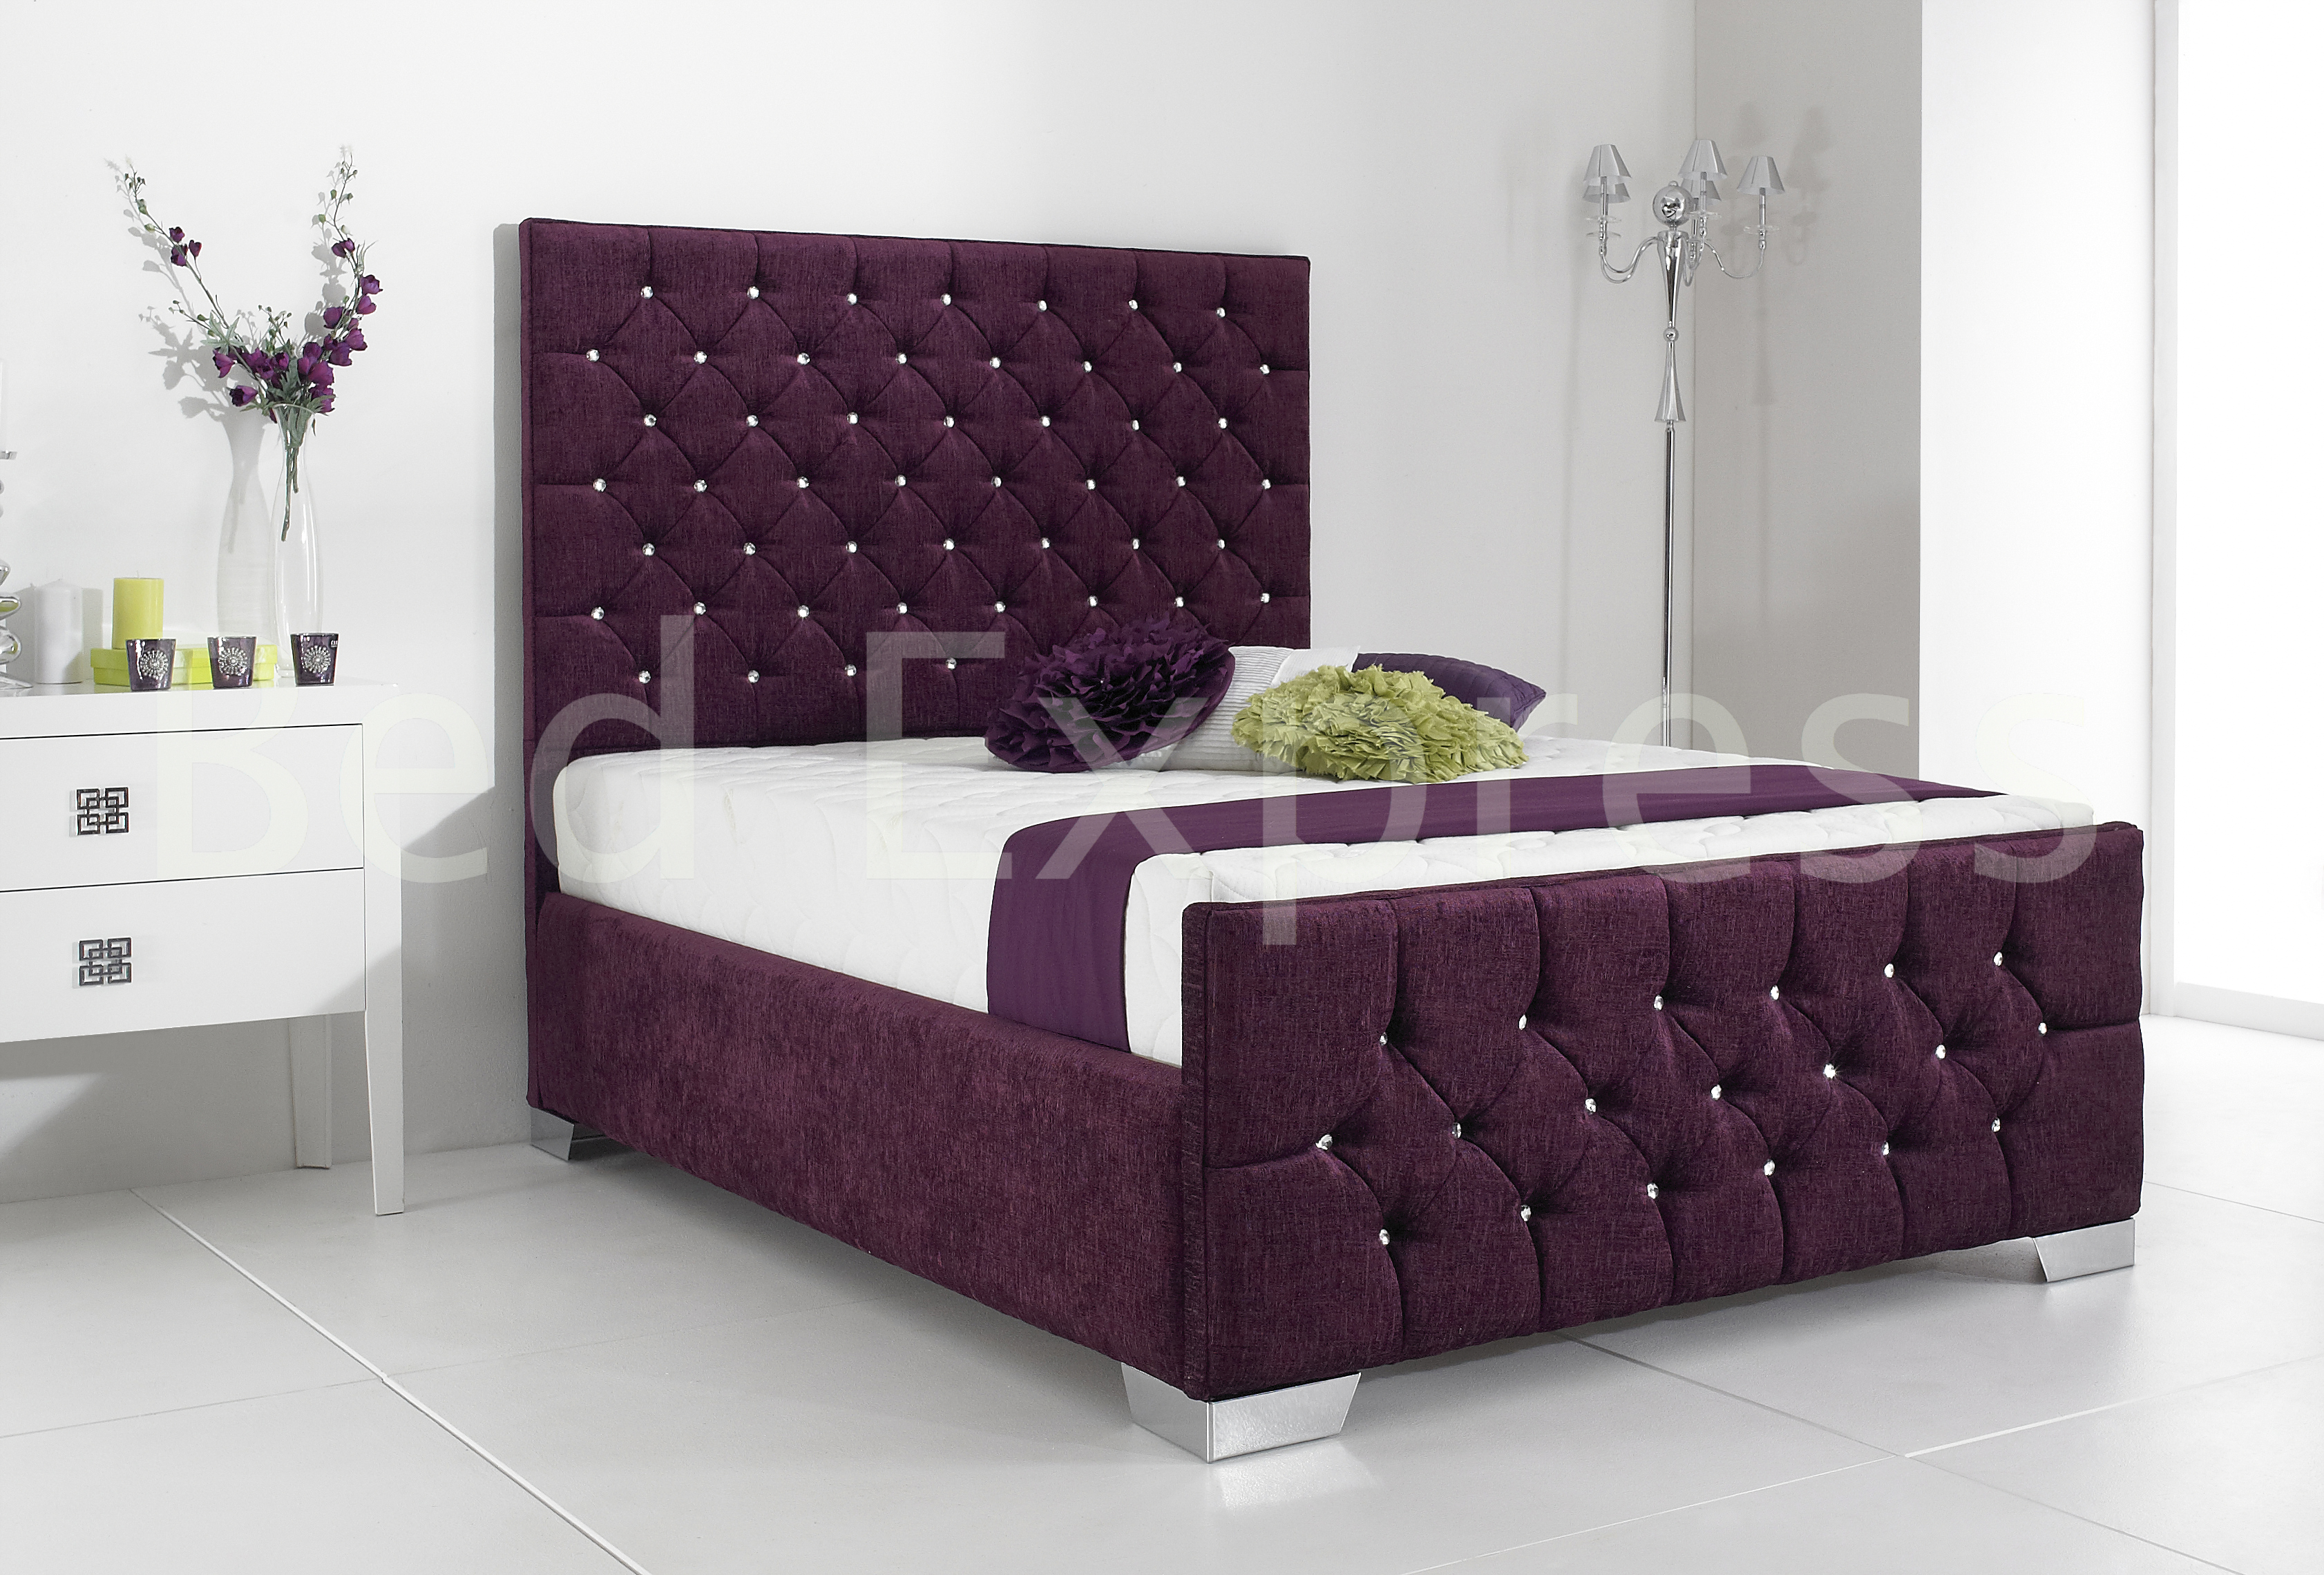 fabric upholstered bed frame made in the uk